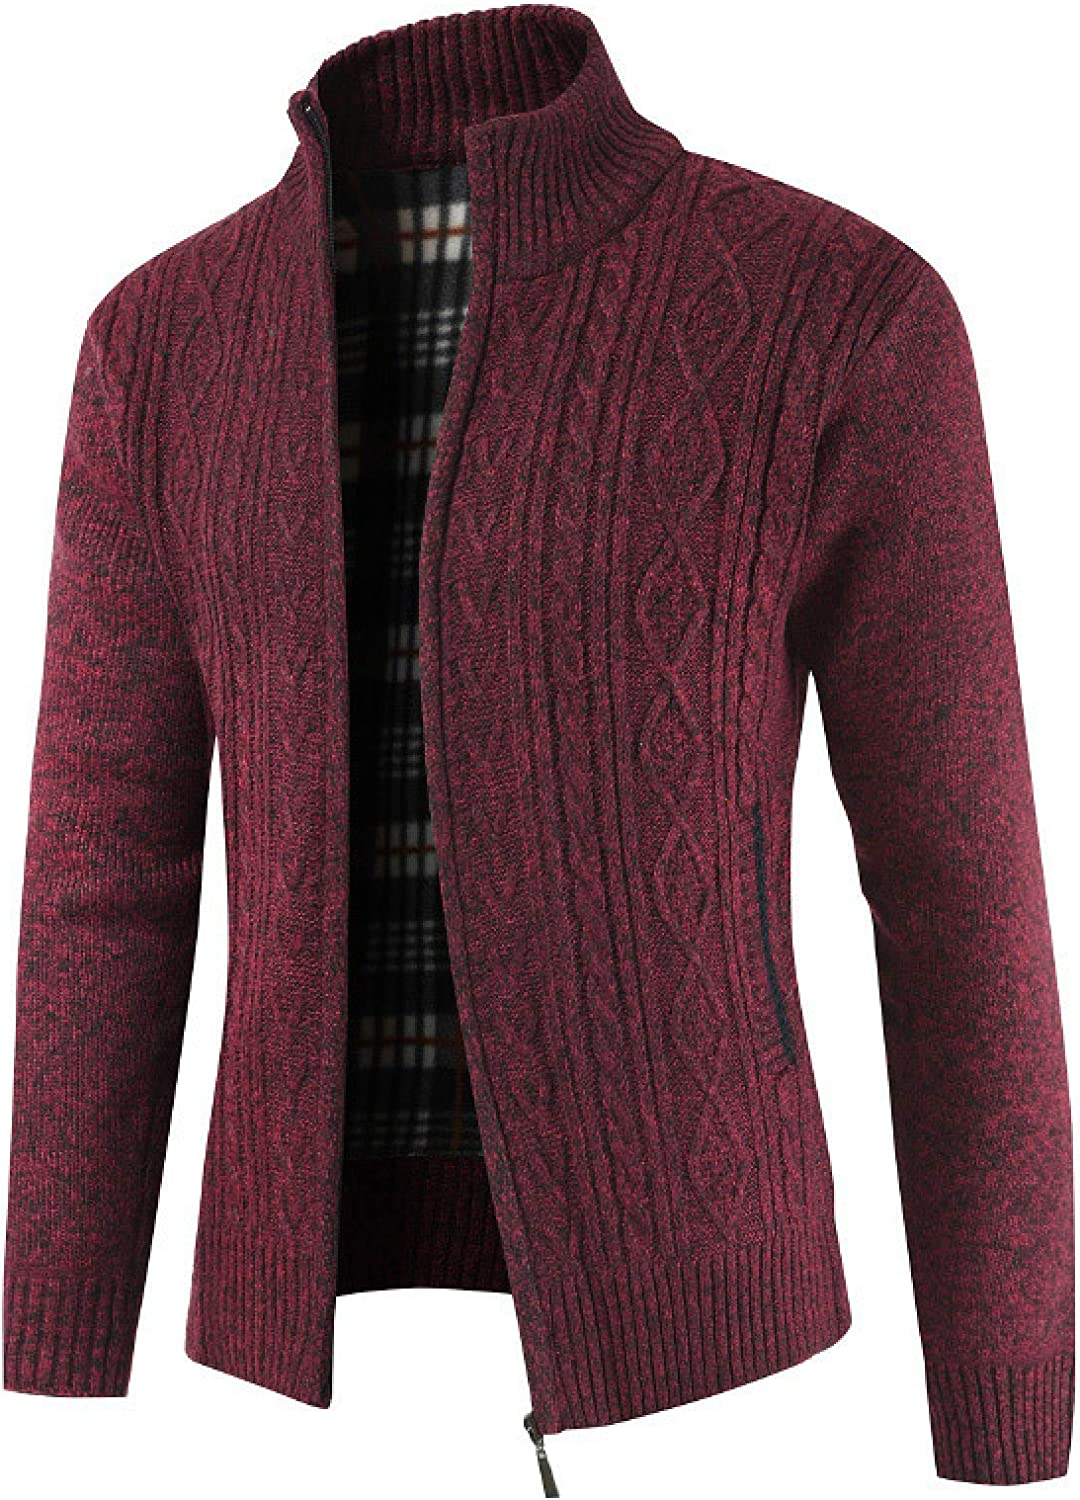 Men's Vintage Cardigan Thickened Knit Sweater Stand-up Collar Business Soft